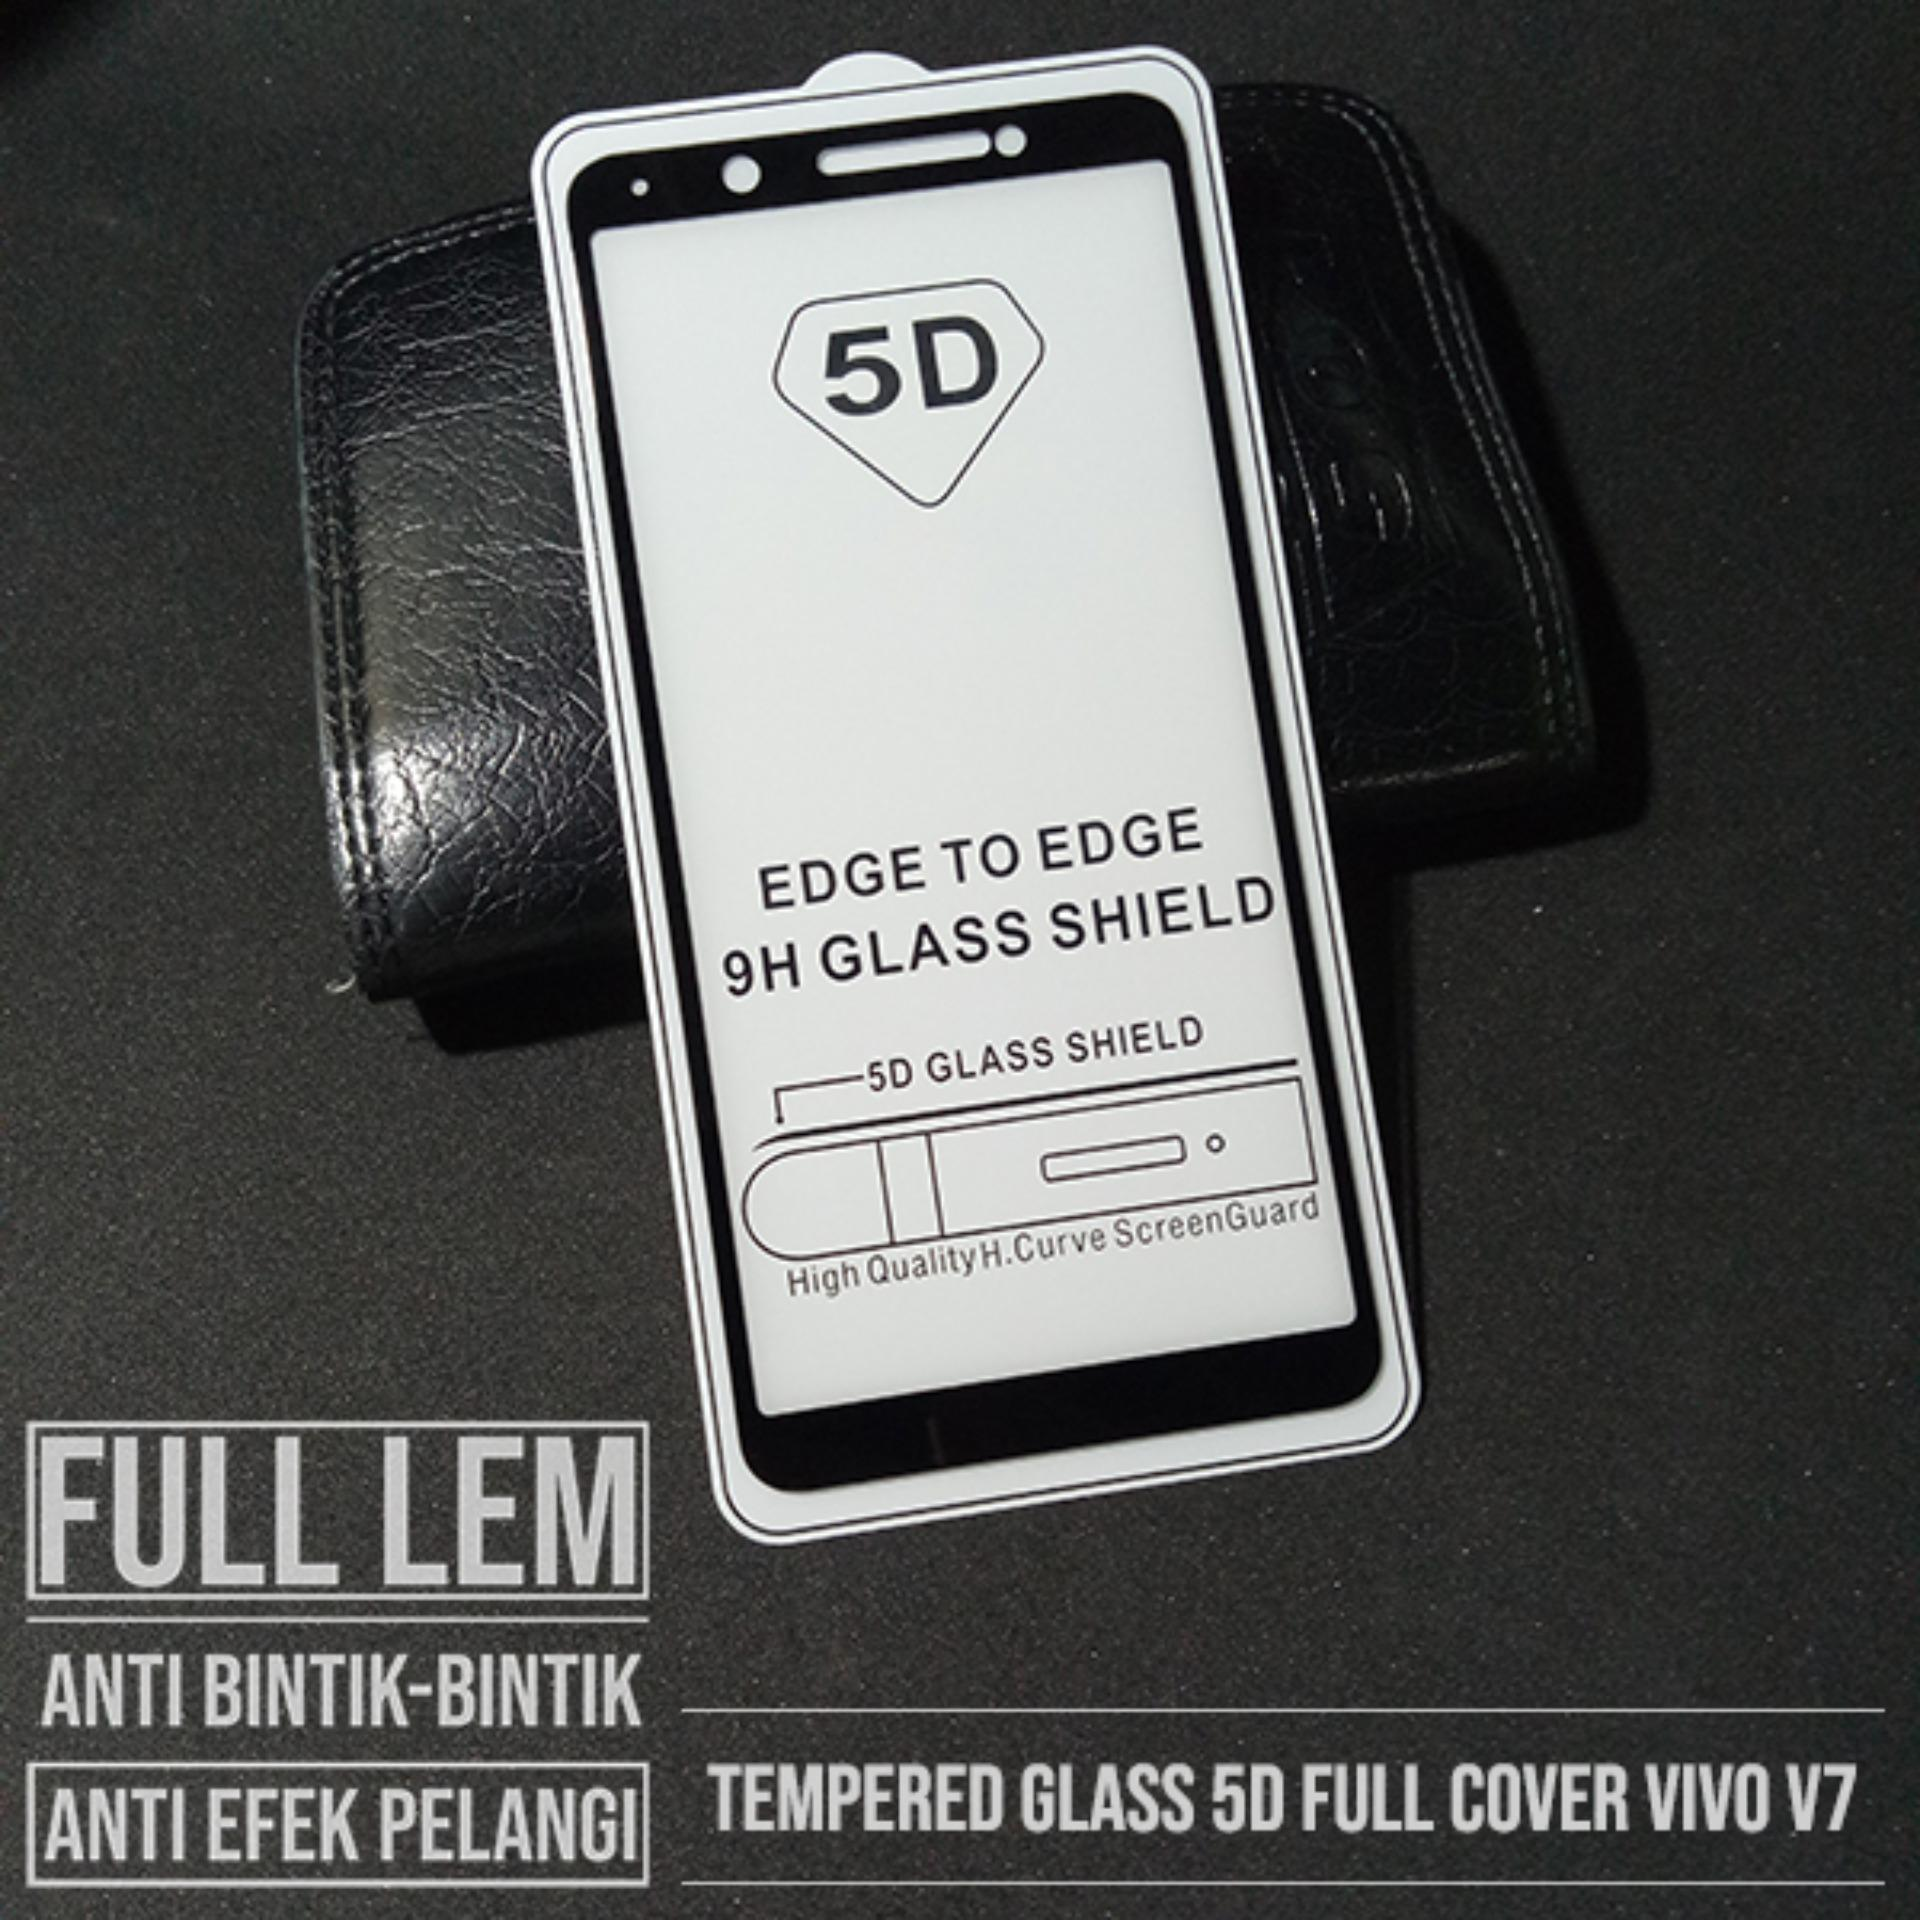 VIVO V7 TEMPRED GLASS 5D FULL COVER SCREEN PROTECTOR ANTI GORES